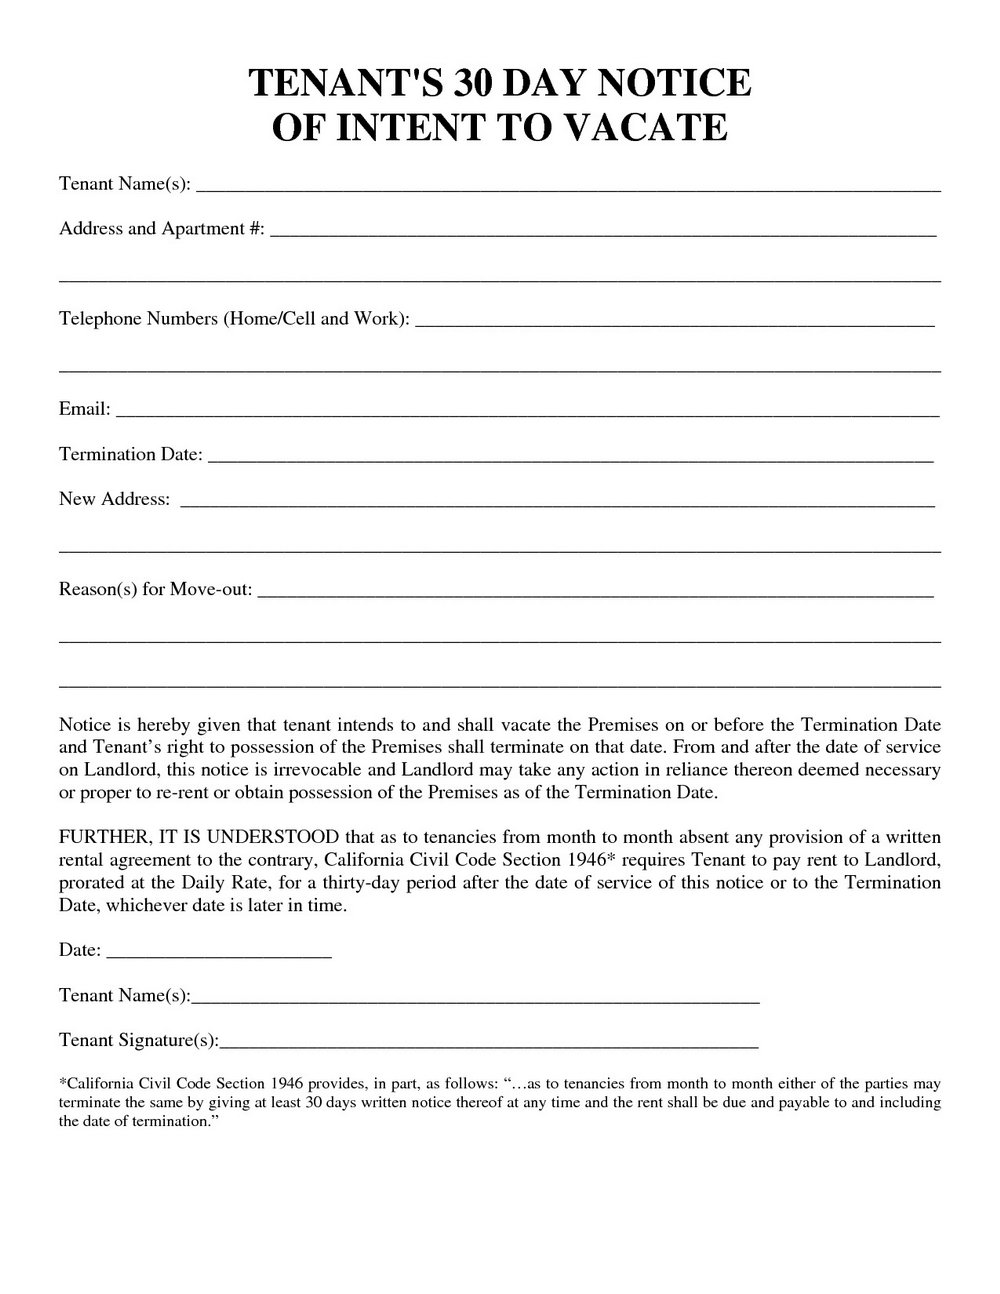 Landlord Notice To Vacate Form